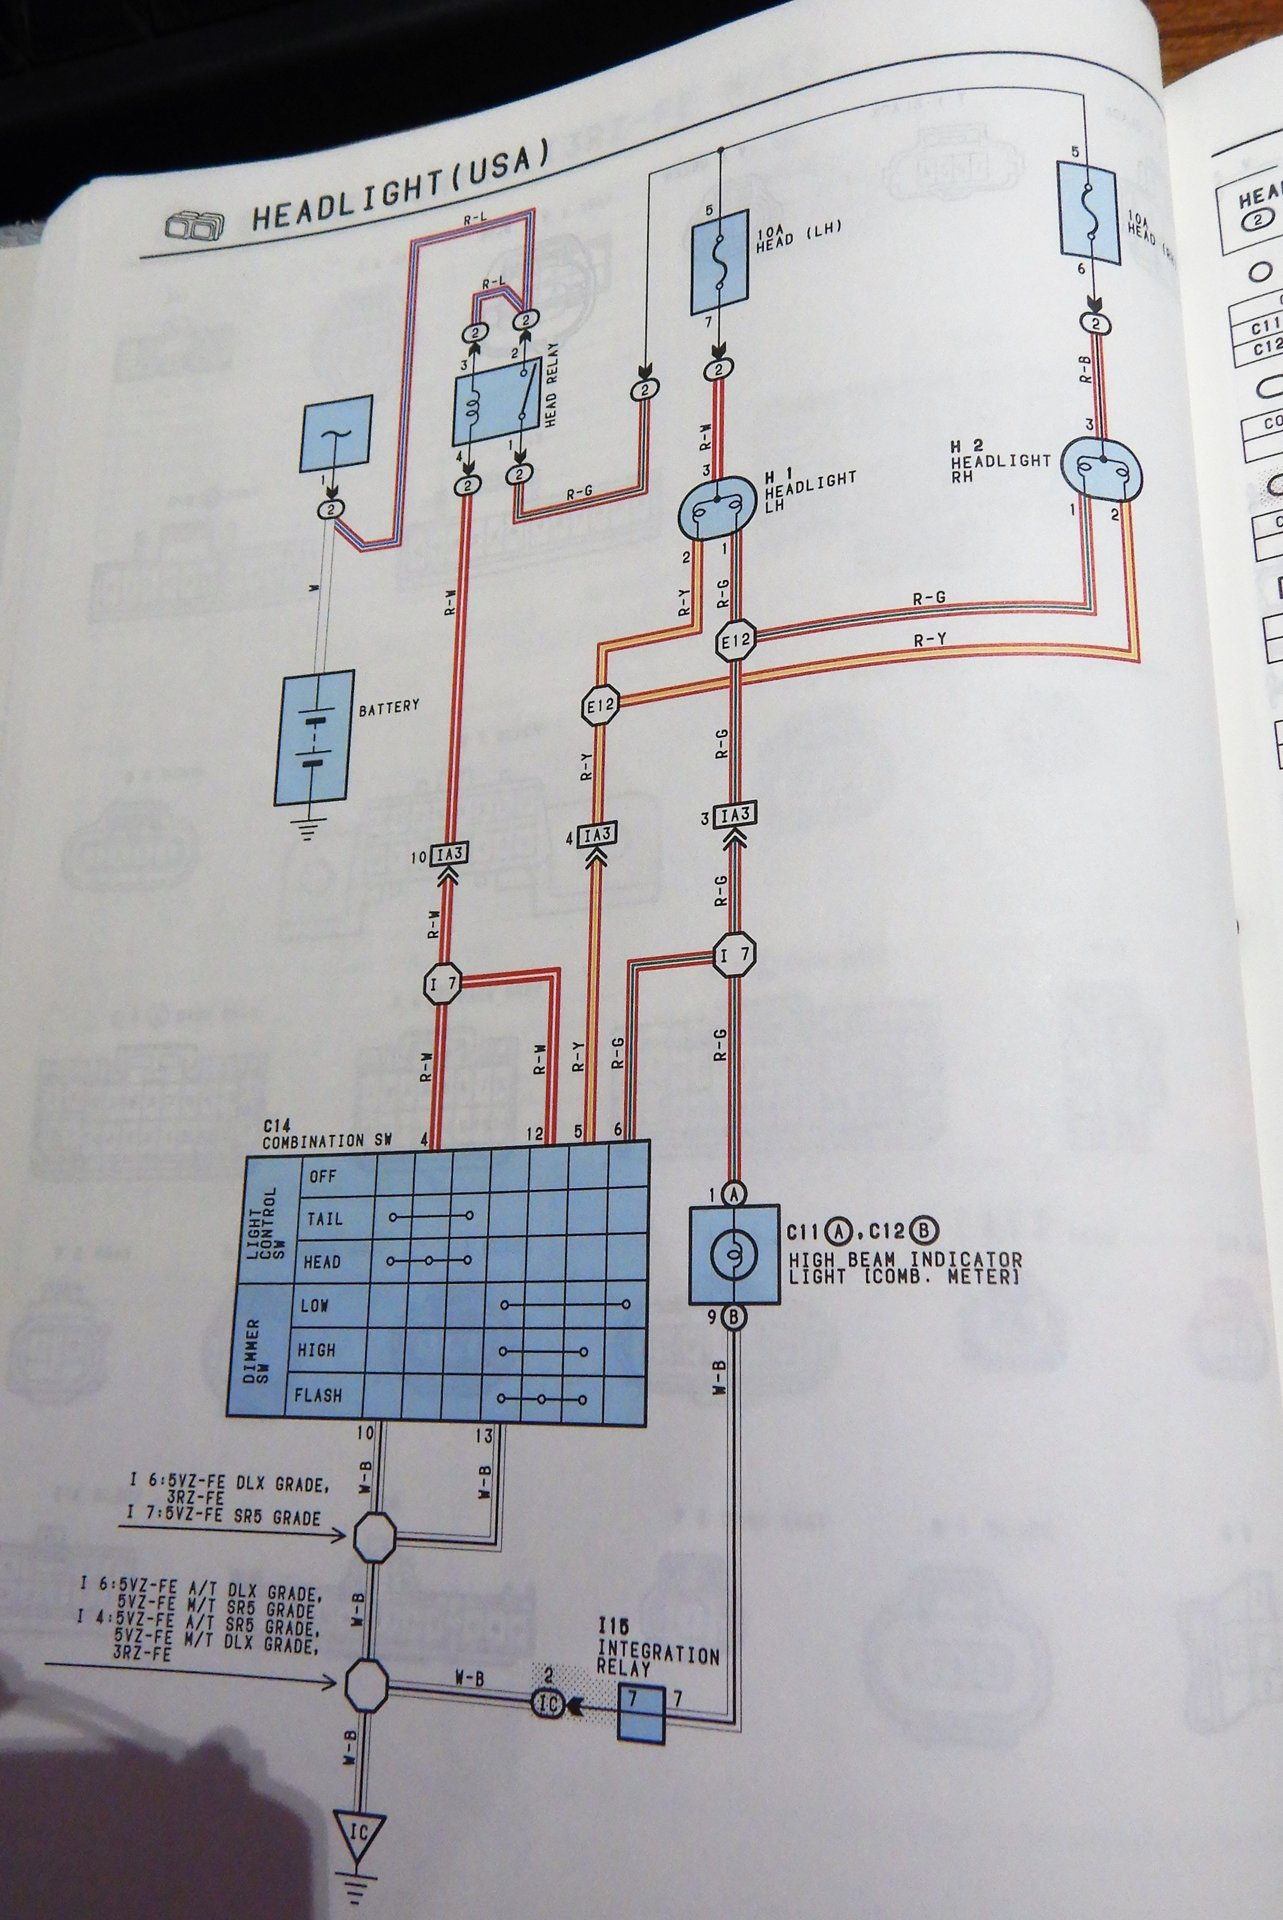 Toyota T100 Headlight Wiring Diagram - Wiring Diagram Replace loose-notice  - loose-notice.miramontiseo.it | 1997 Toyota T100 Wiring Diagram |  | loose-notice.miramontiseo.it